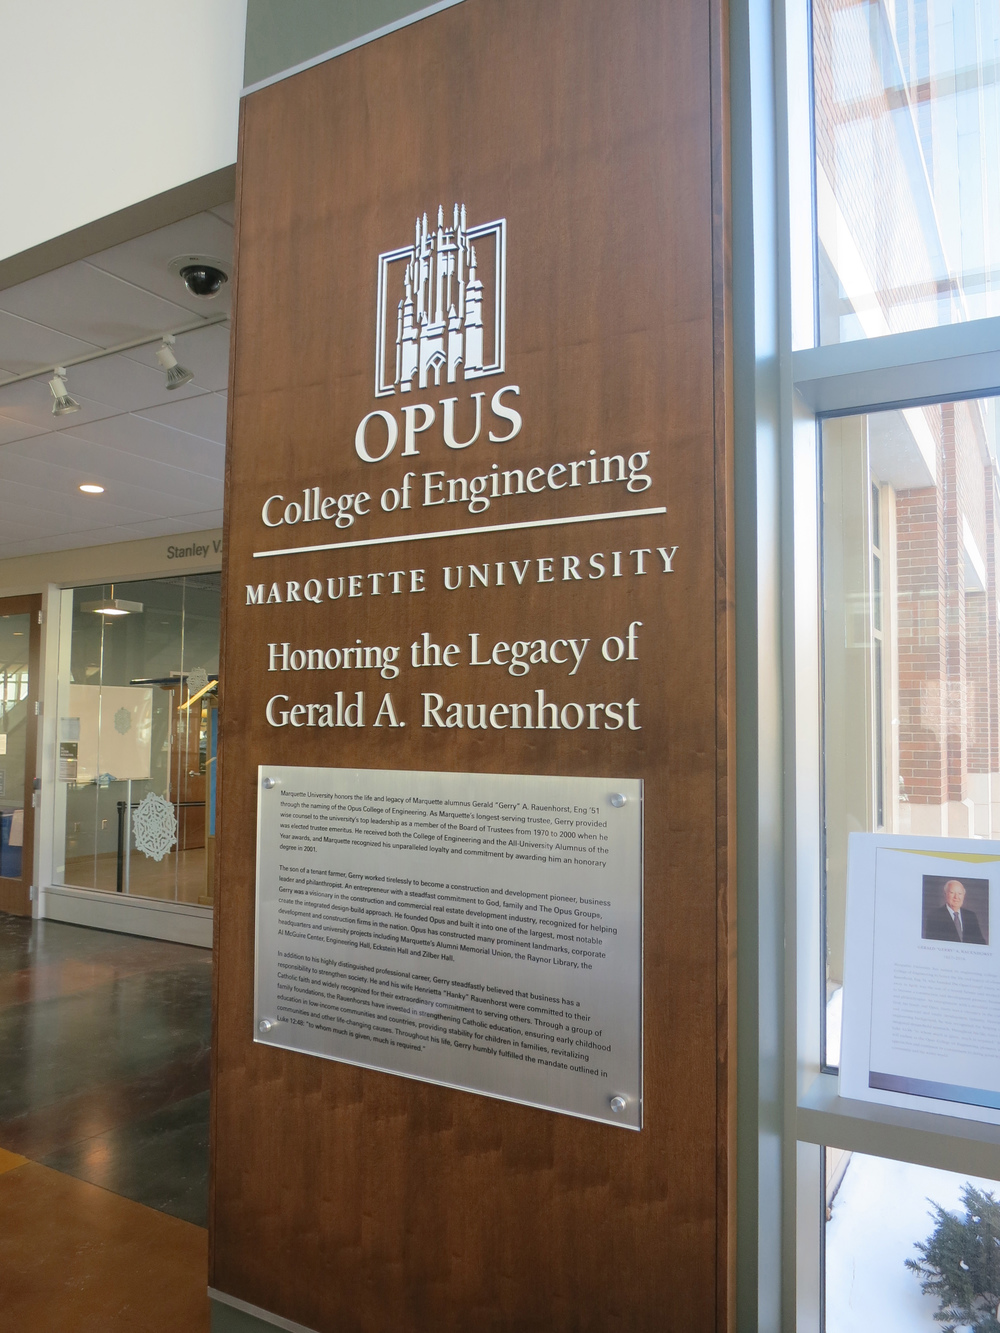 Marquette University Opus College of Engineering